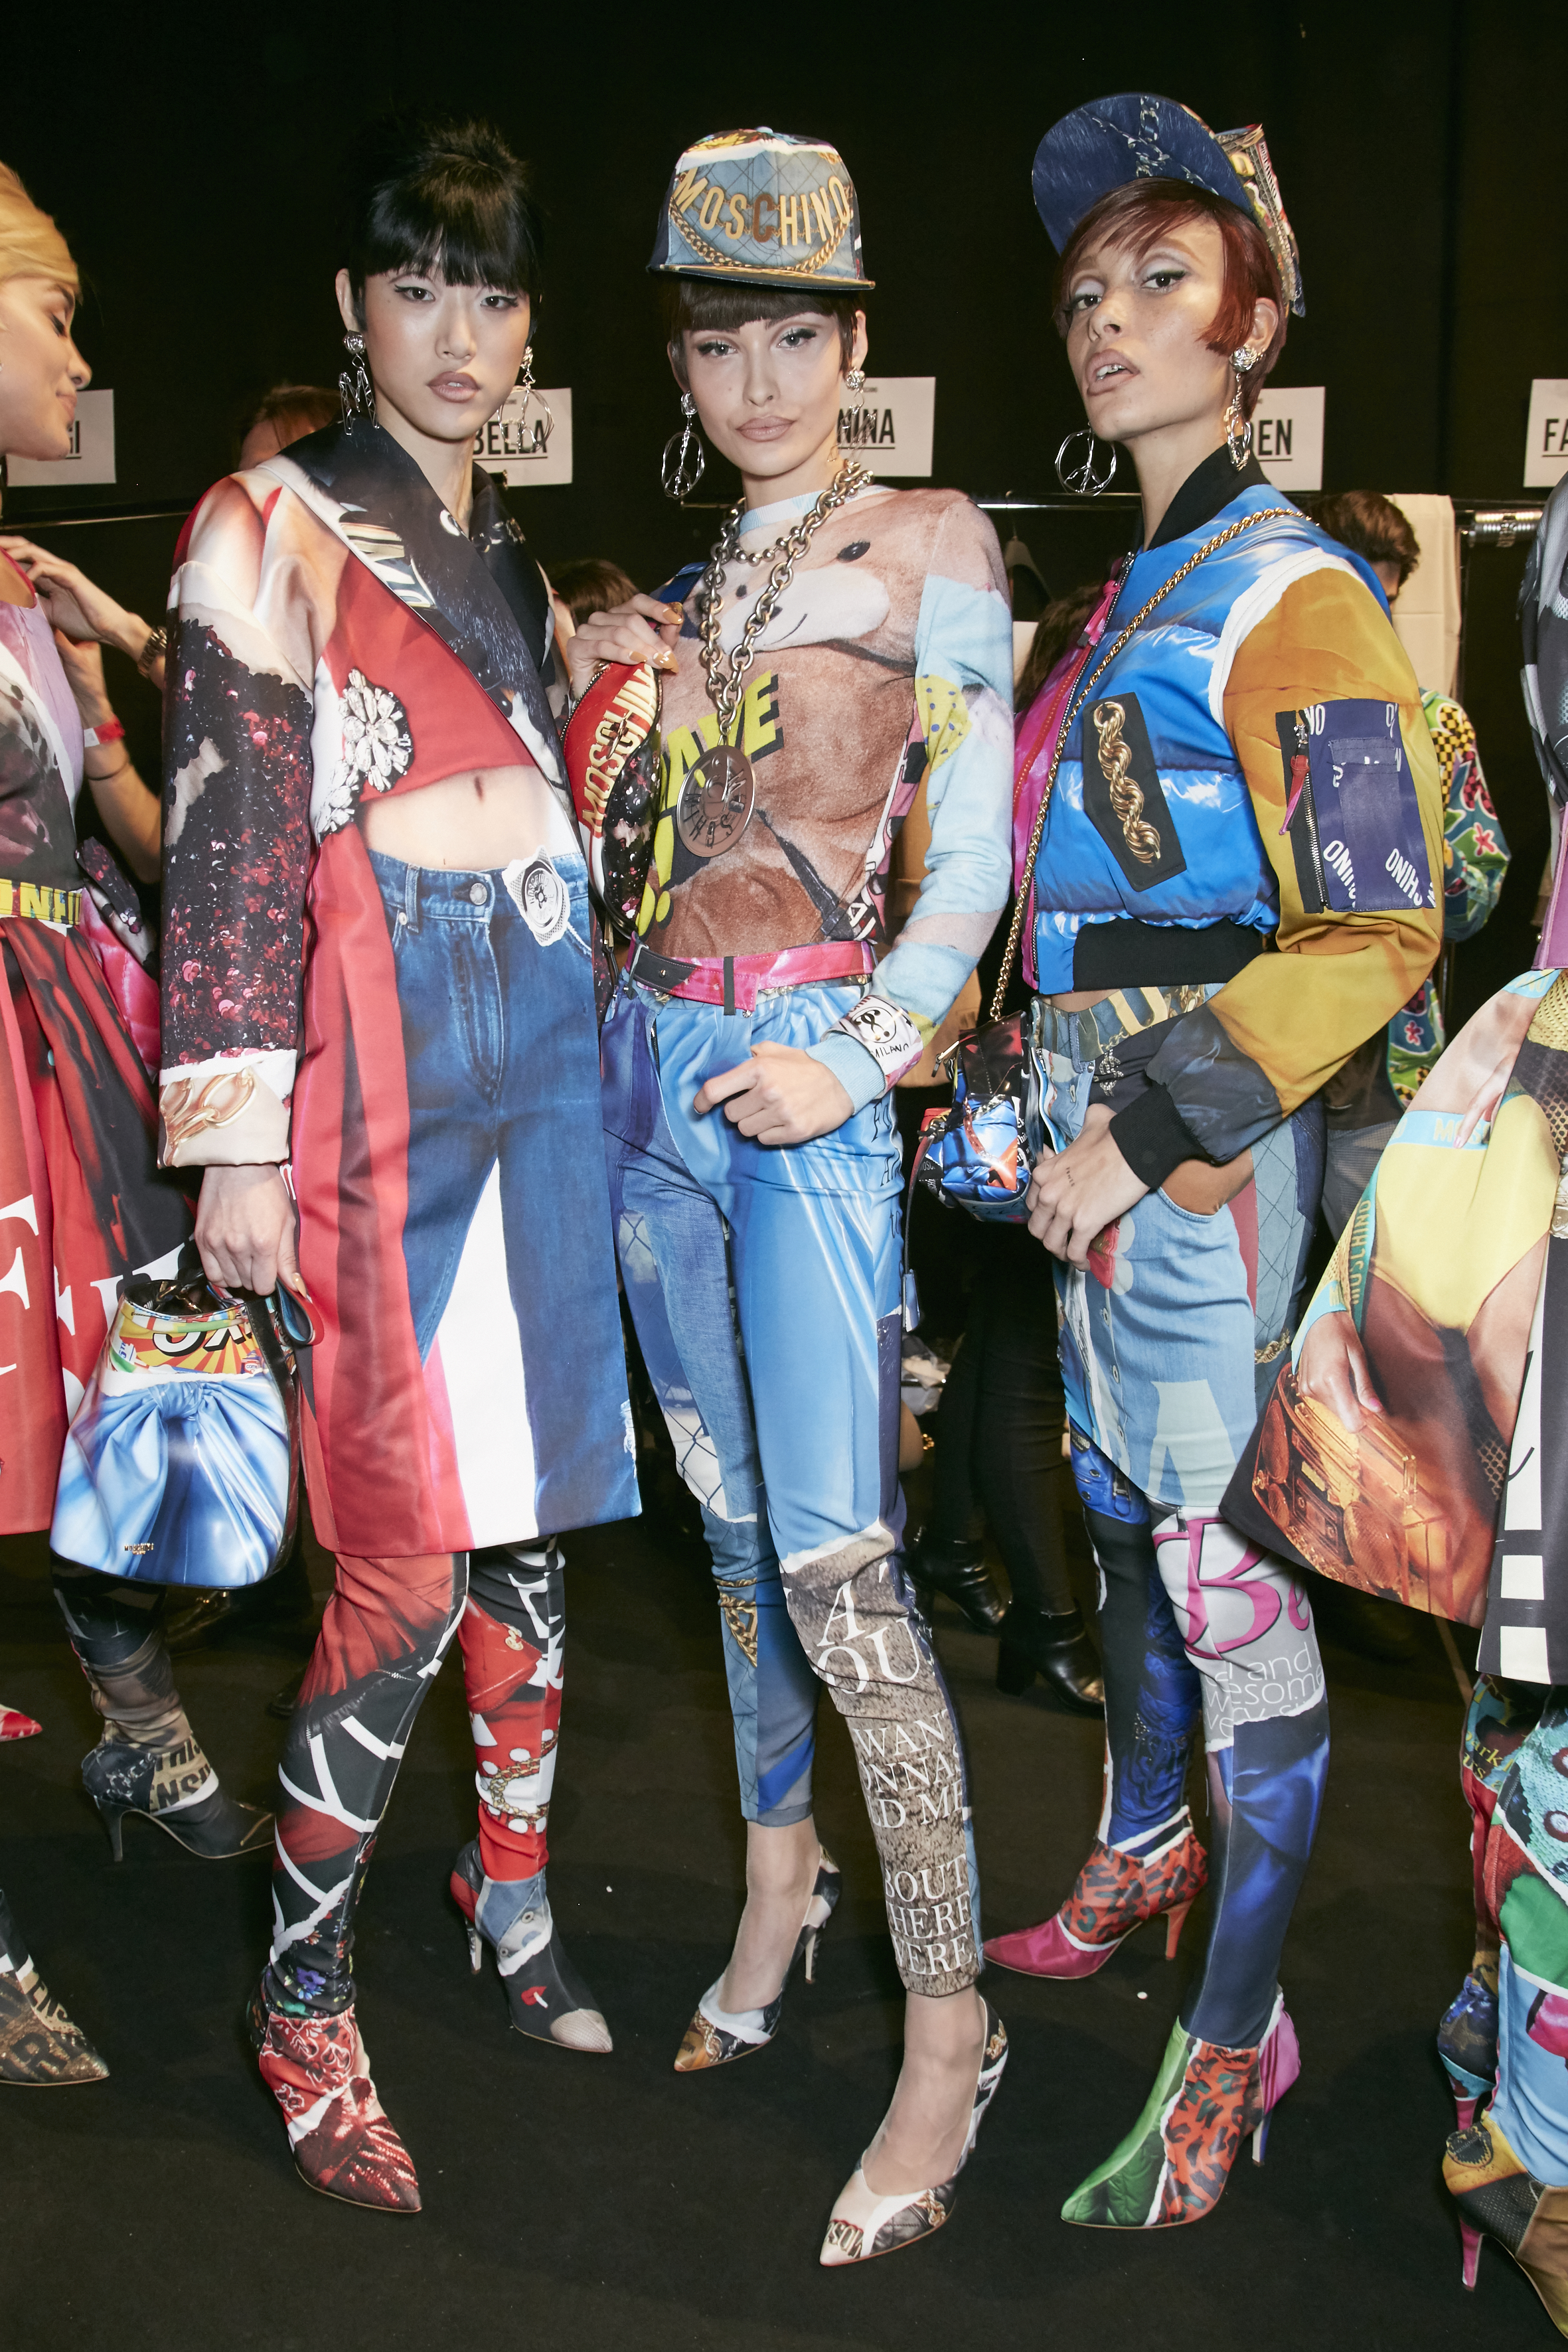 MILAN, ITALY - FEBRUARY 23: Models are seen backstage ahead of the Moschino show during Milan Fashion Week  Fall/Winter 2017/18 on February 23, 2017 in Milan, Italy. (Photo by Antonello Trio/Getty Images)